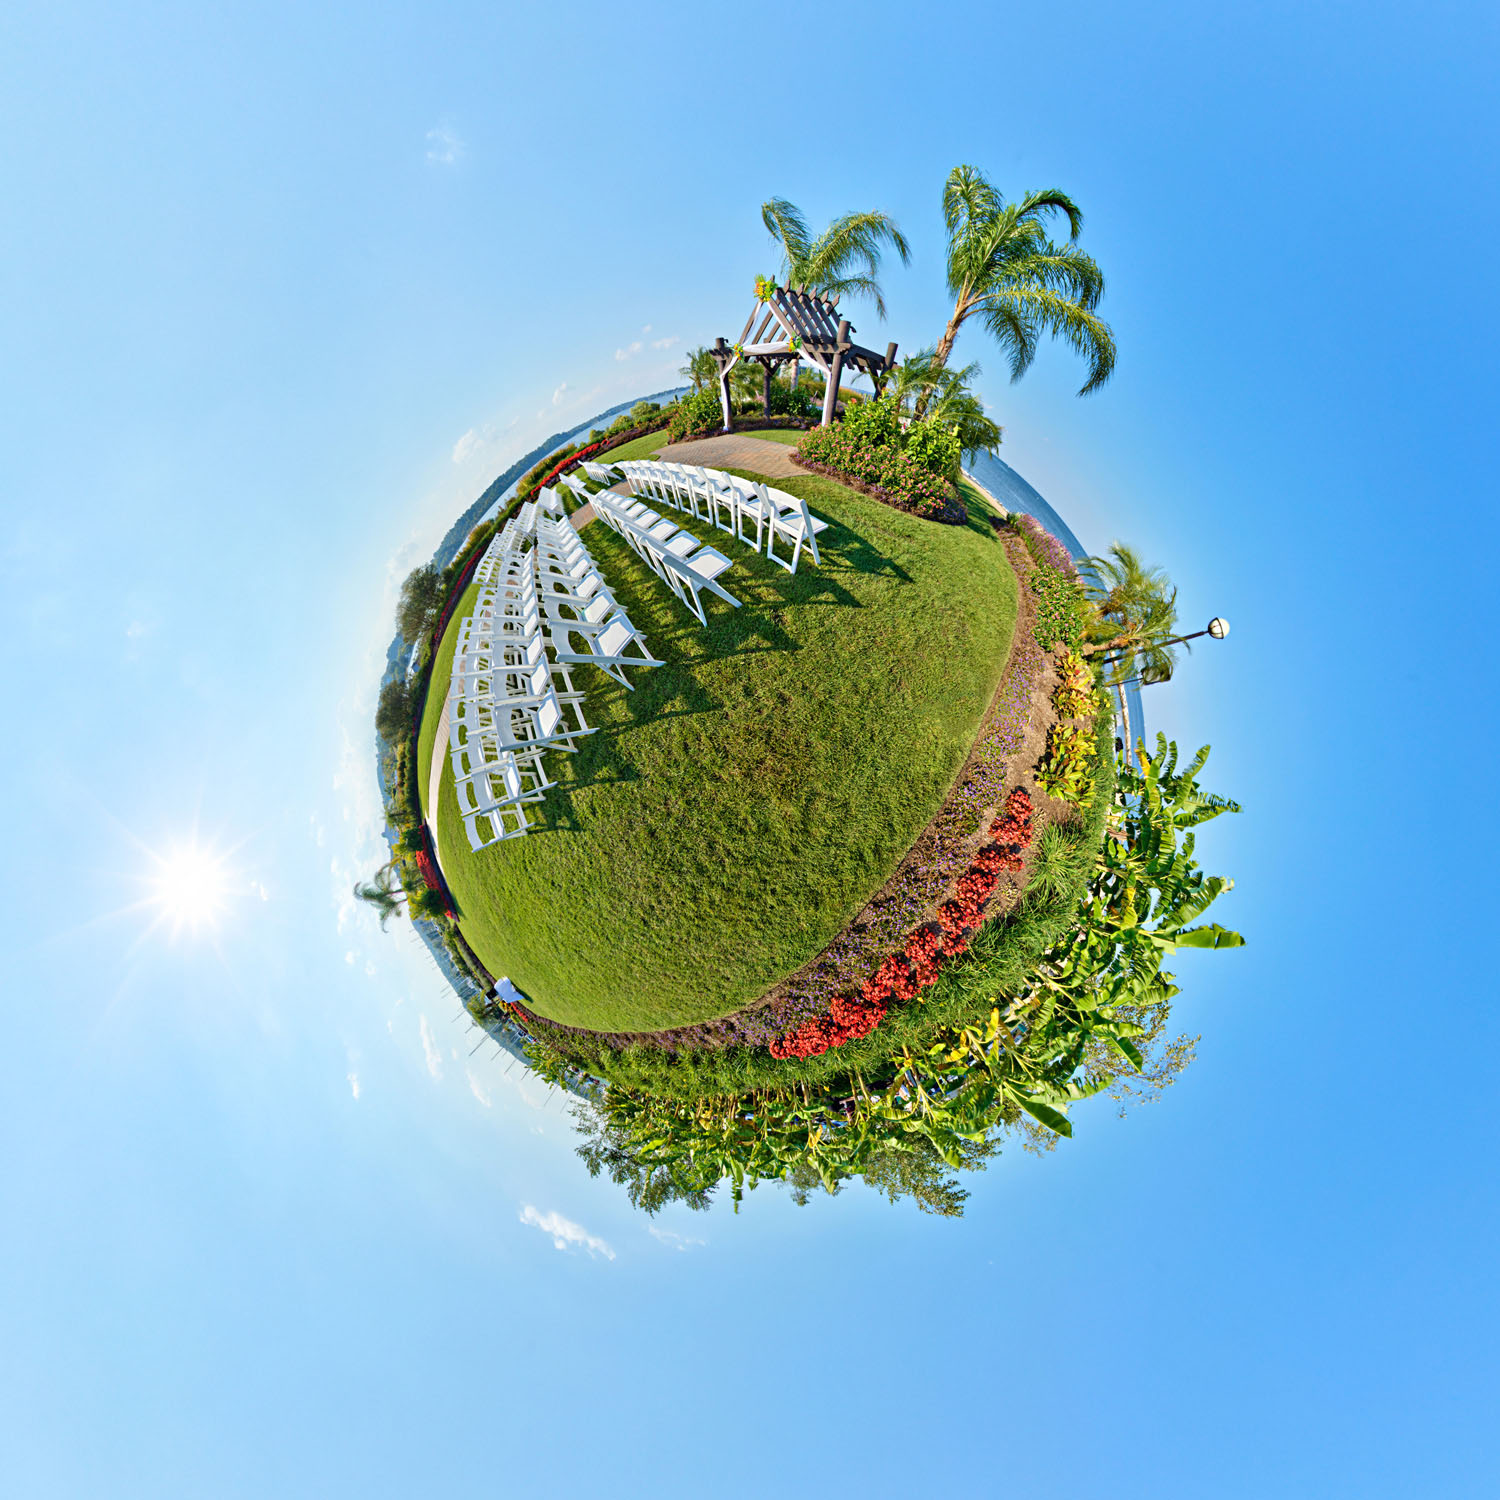 AV_120922_2206-HDR Panorama Planet small_web.jpg